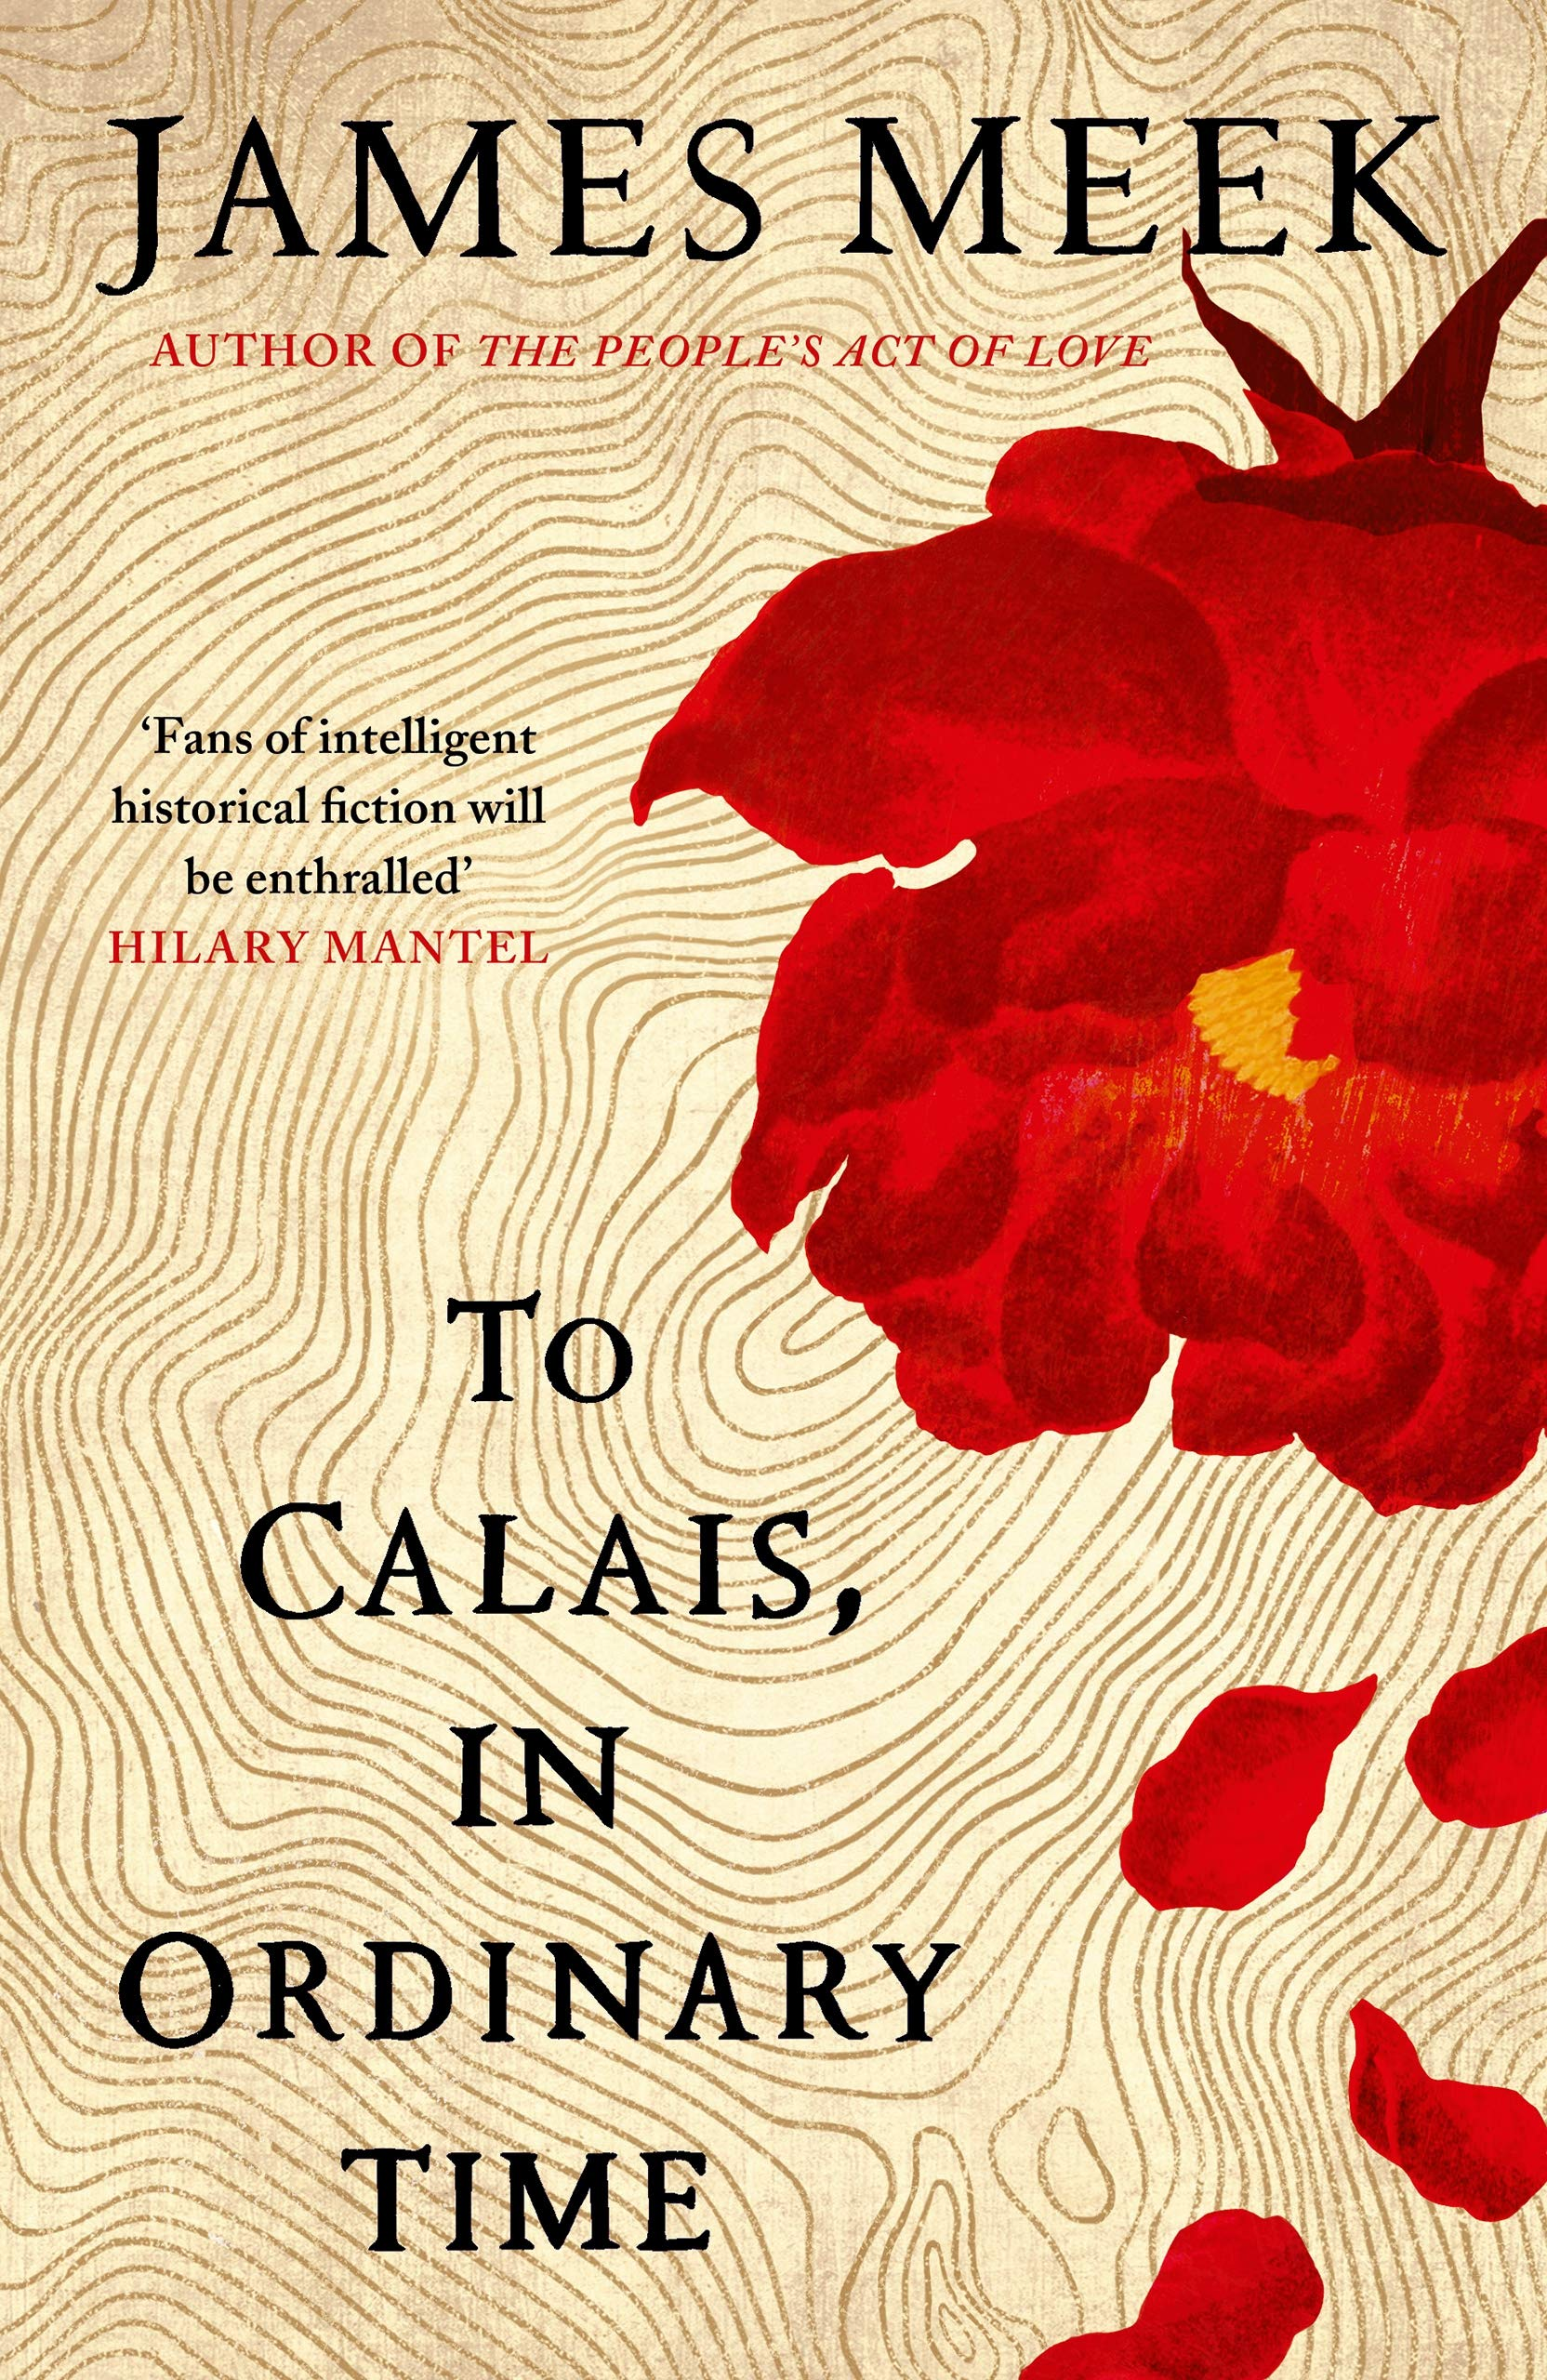 To Calais, in ordinary time – James Meek book novel cover design